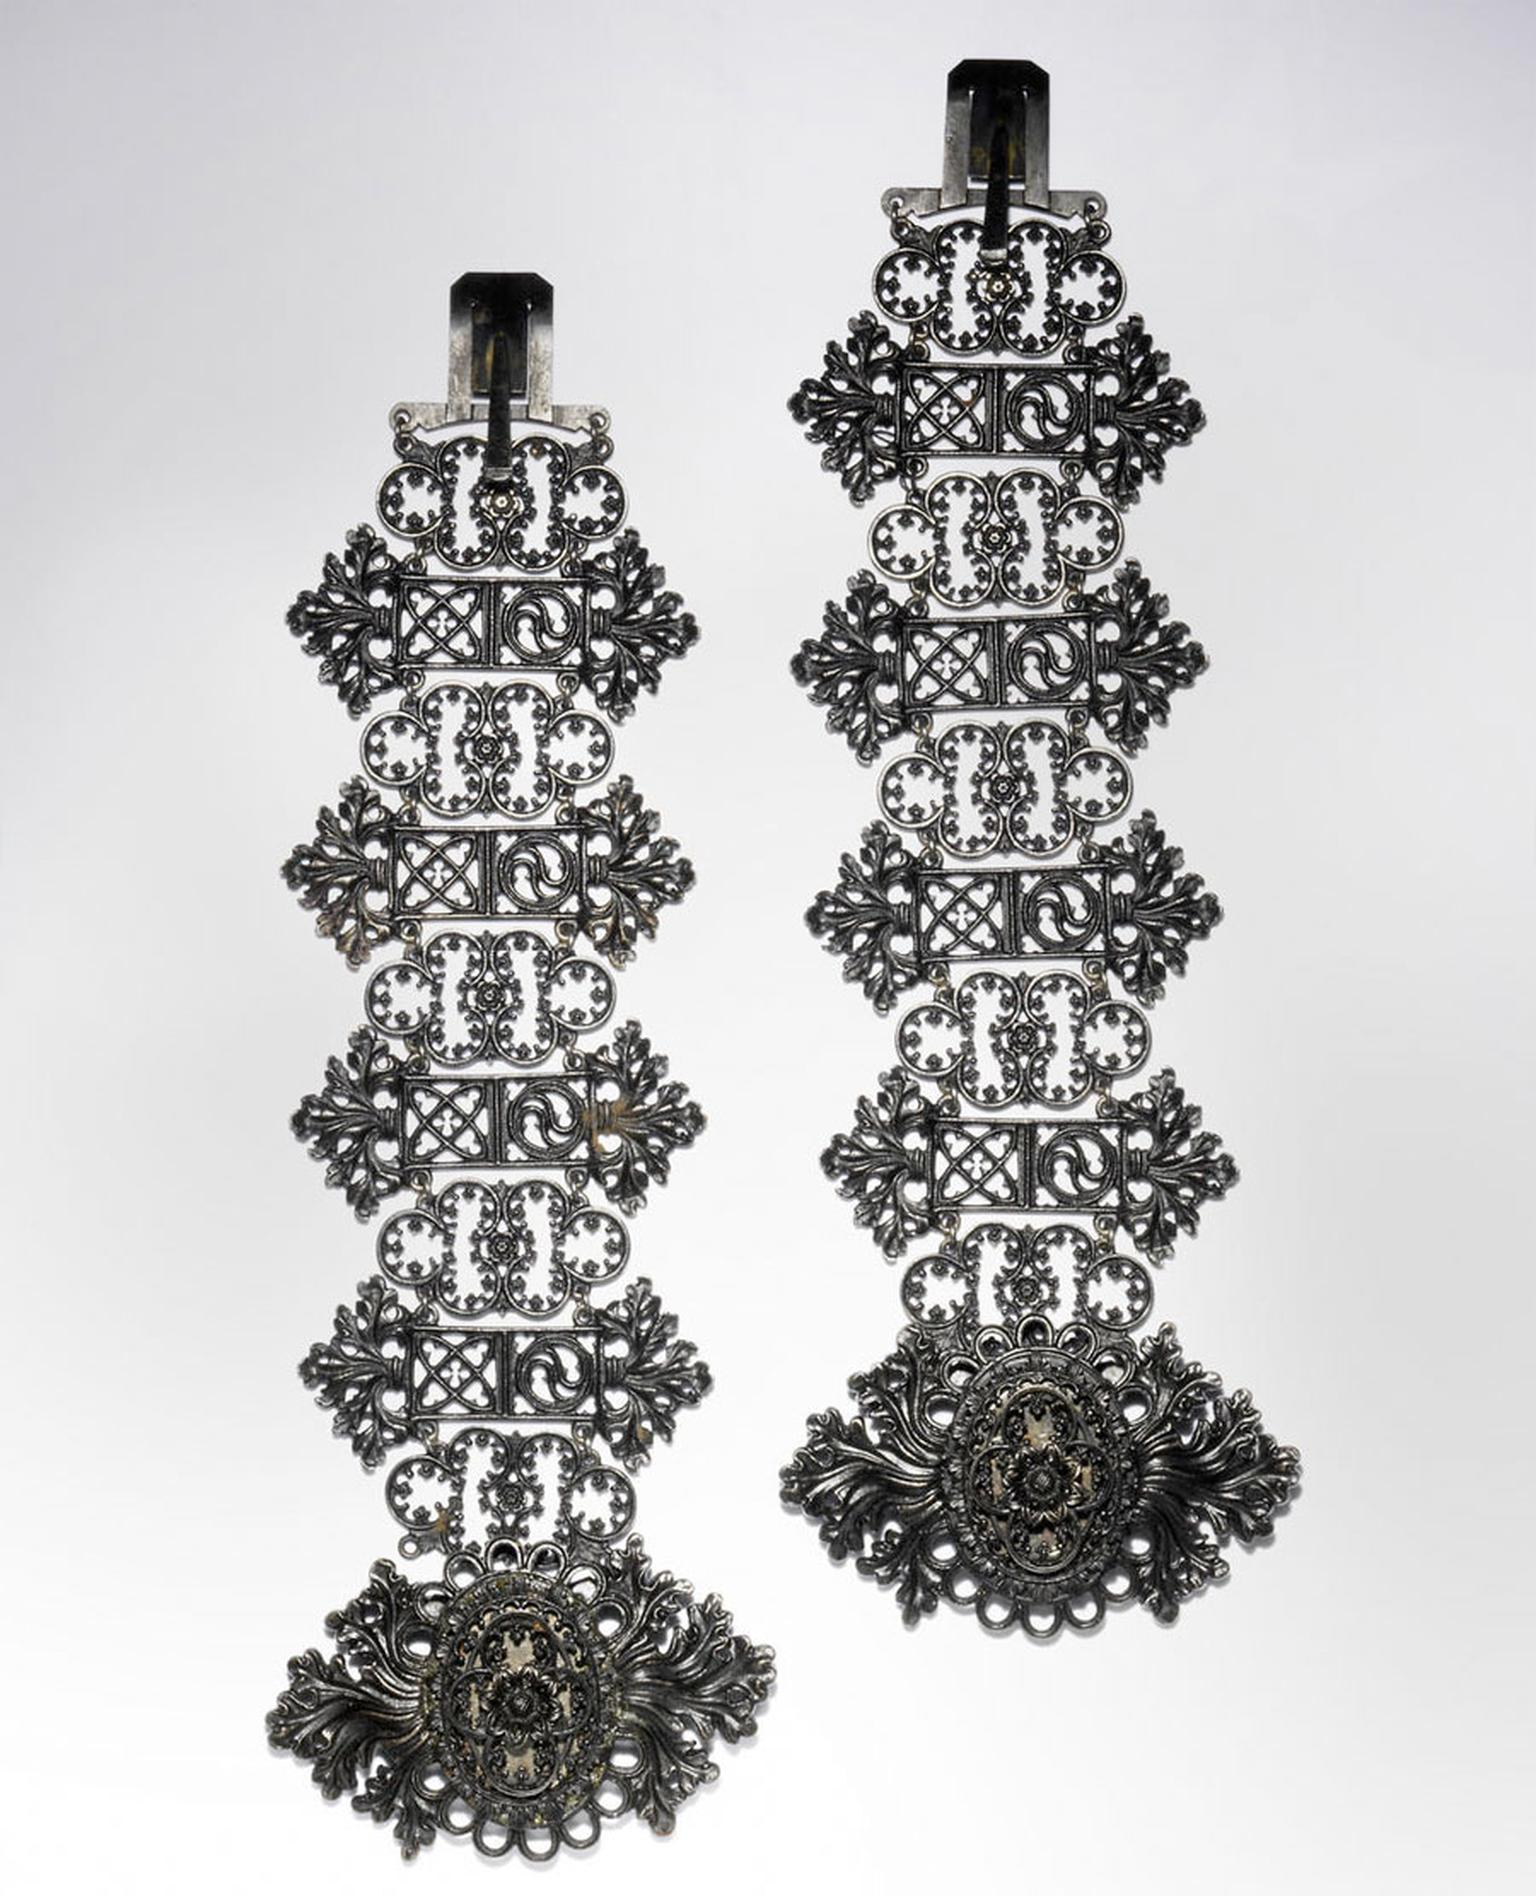 Bonhams-A-pair-of-Berlin-ironwork-bracelets-by-Geiss-circa-1820.jpg